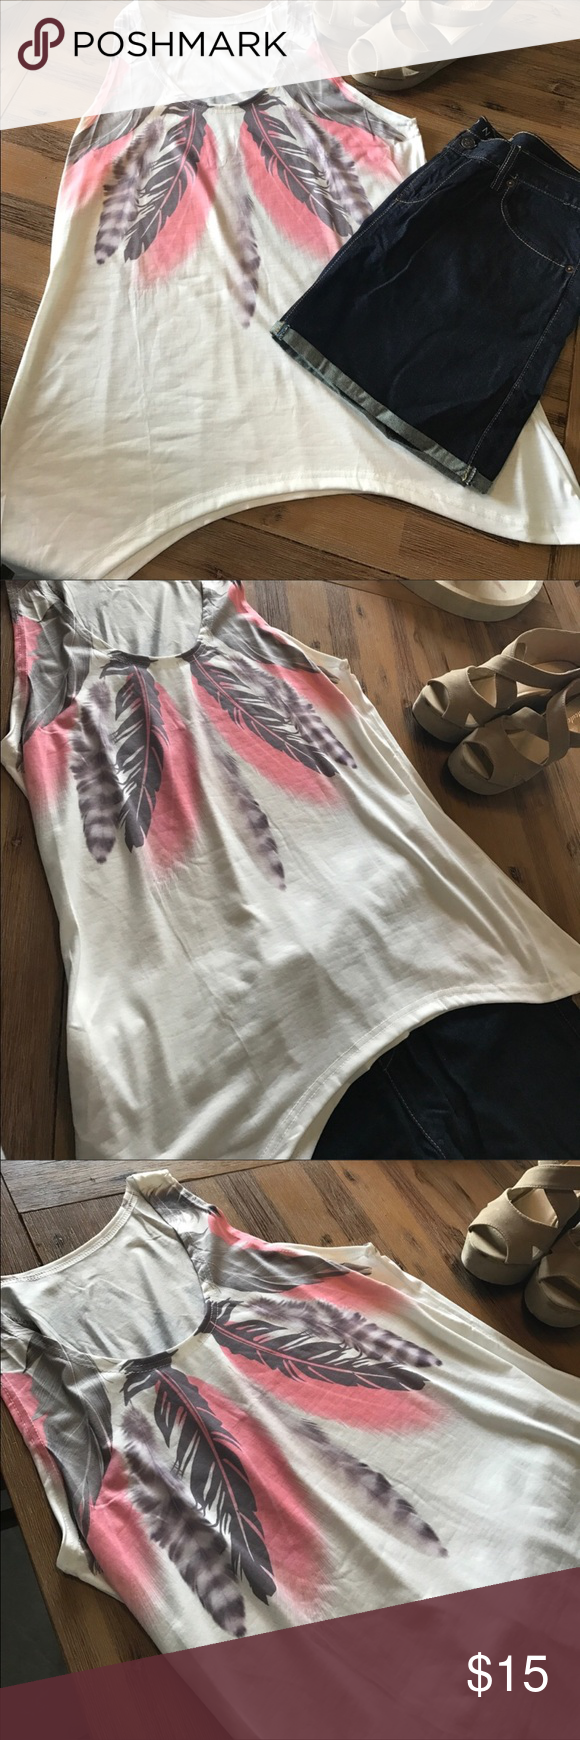 Feathered Swingy Tank Top So Boho Chic L (8-12) 🆕 This feather print is so beautiful! It doesn't quite fit me as I'm more of a 16. Bought in hopes of making it work. My loss, your gain- even the swingy hemline is gorgeous! Make it yours! 🌺🎀🌸 Tops Tank Tops